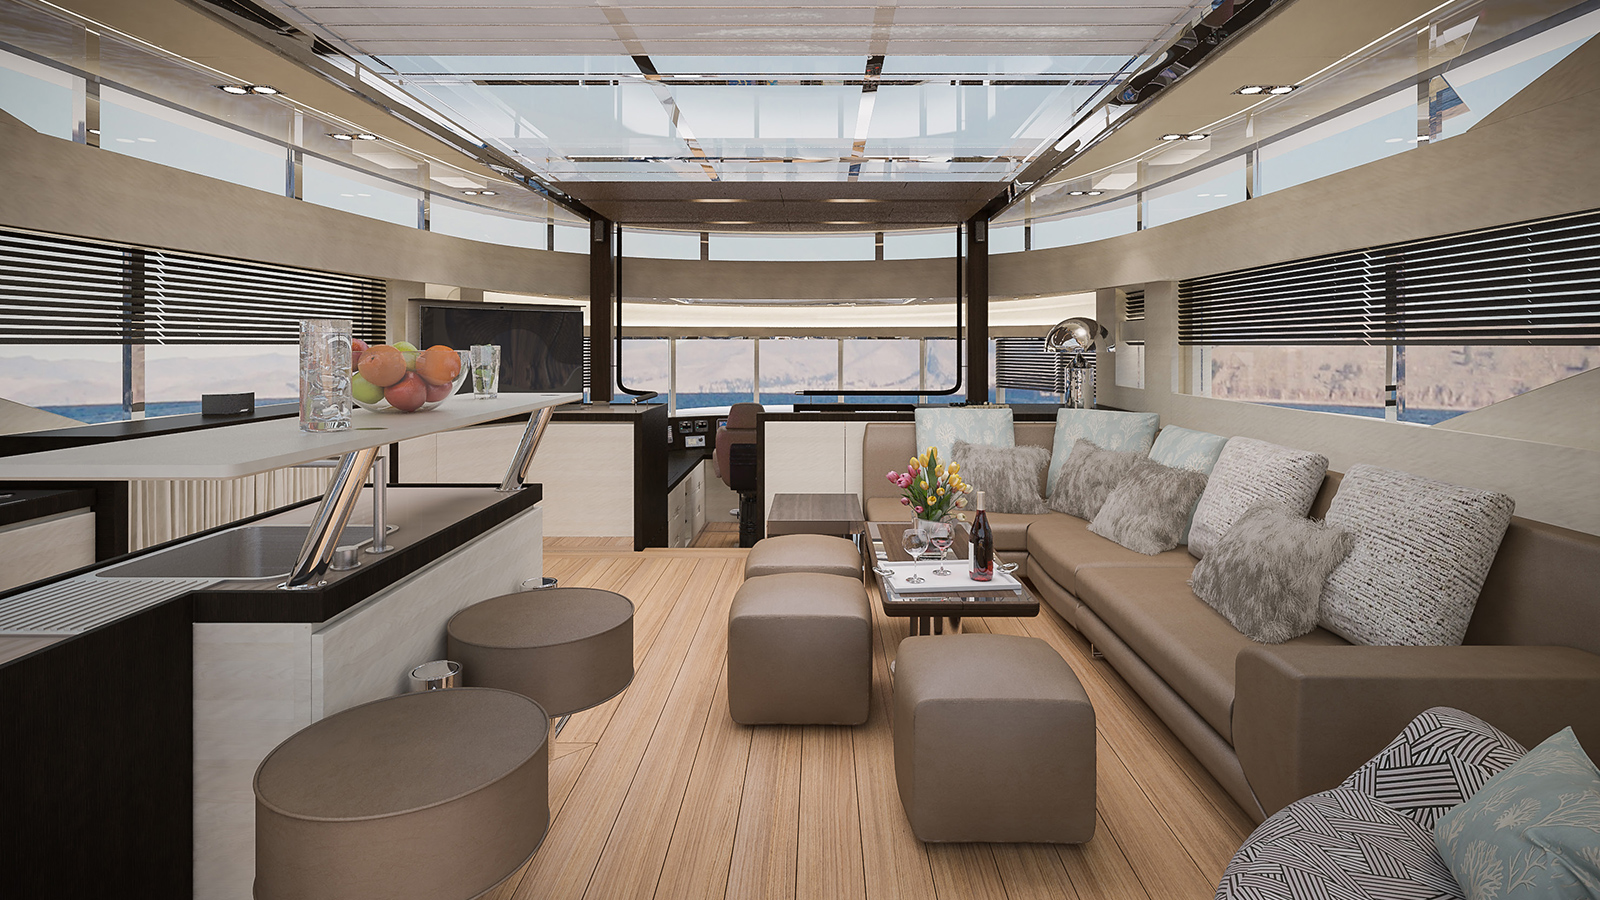 the-upper-deck-on-the-filippetti-navetta-26-super-yacht-features-a-skylounge-area